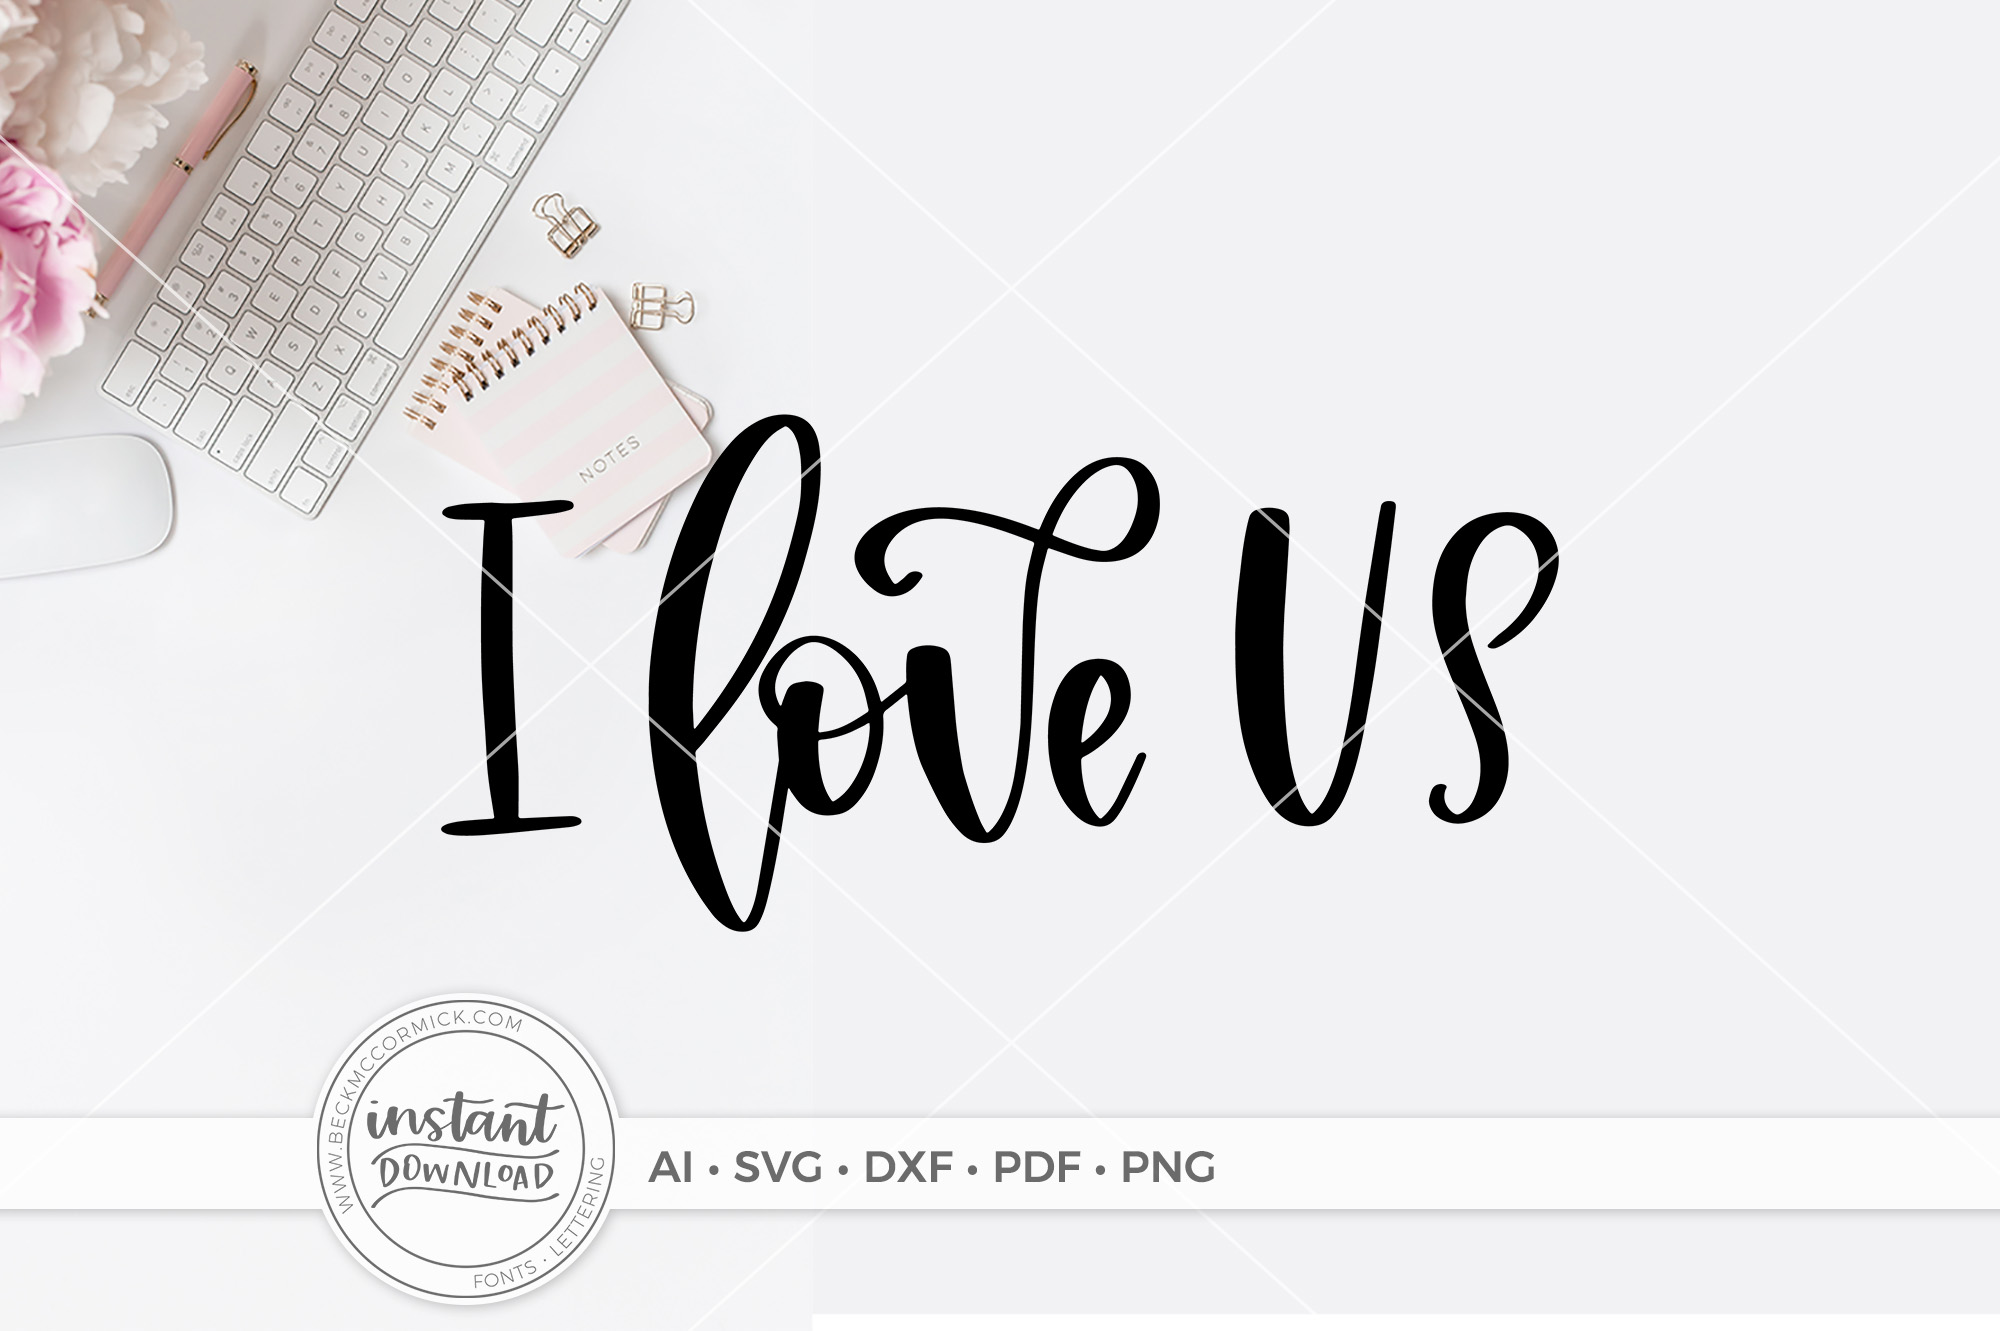 Download Free I Love Us Graphic By Beckmccormick Creative Fabrica for Cricut Explore, Silhouette and other cutting machines.